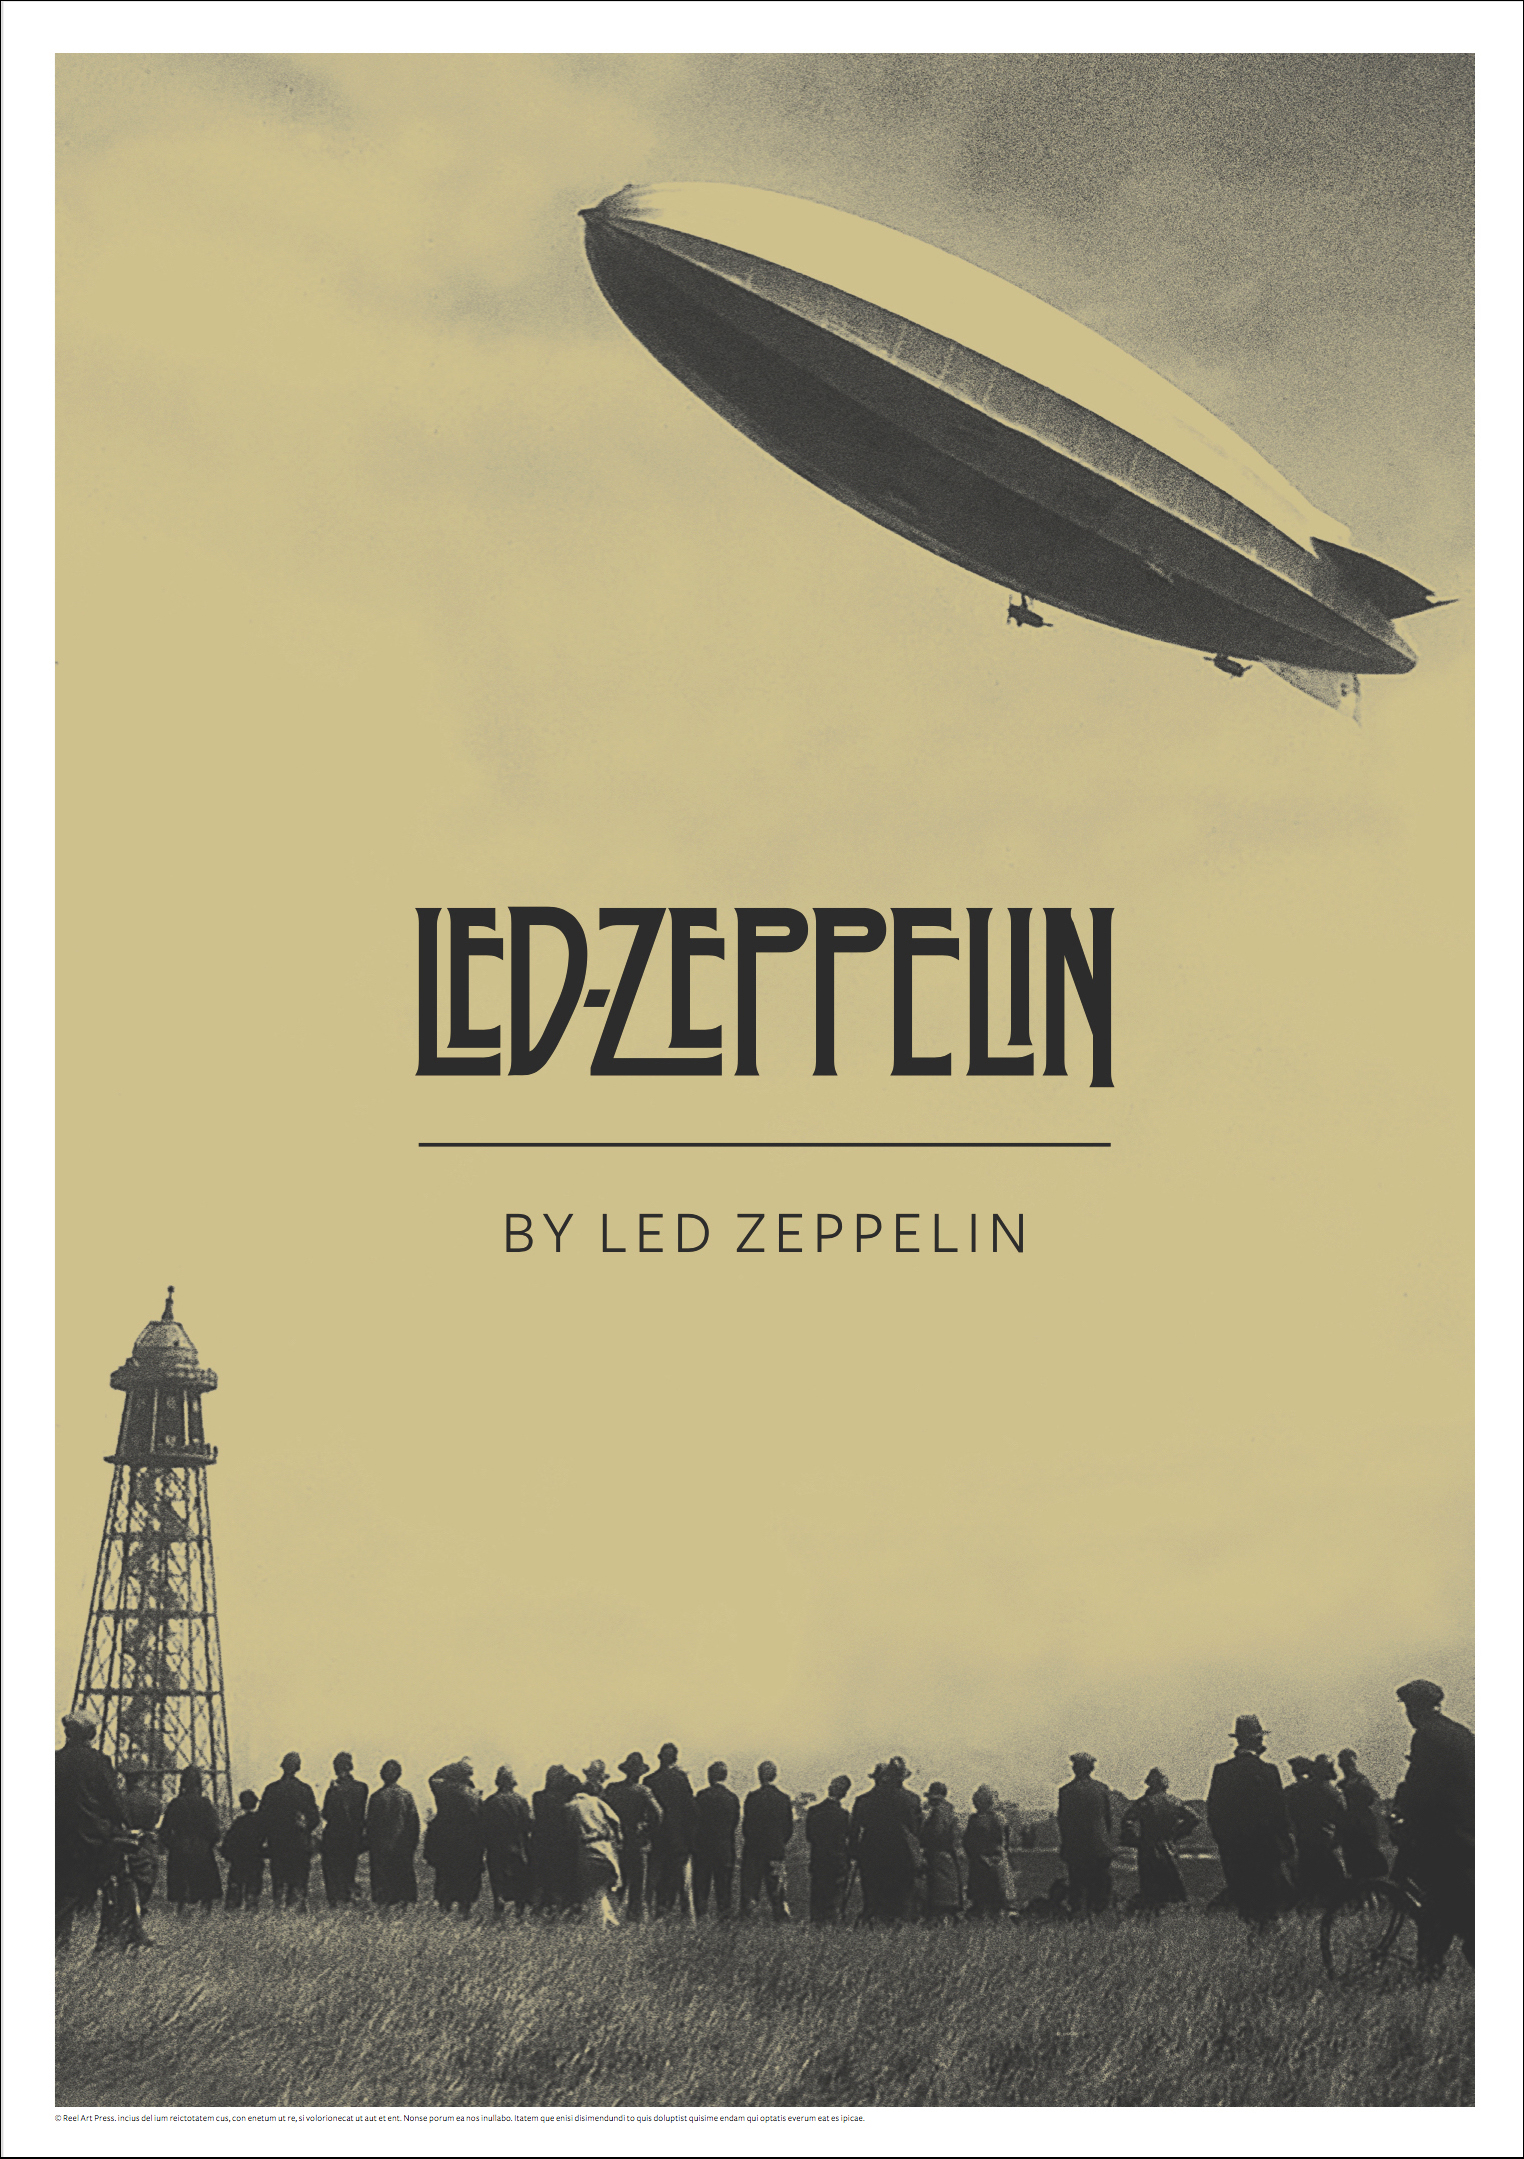 Led Zeppelin Poster Stockists